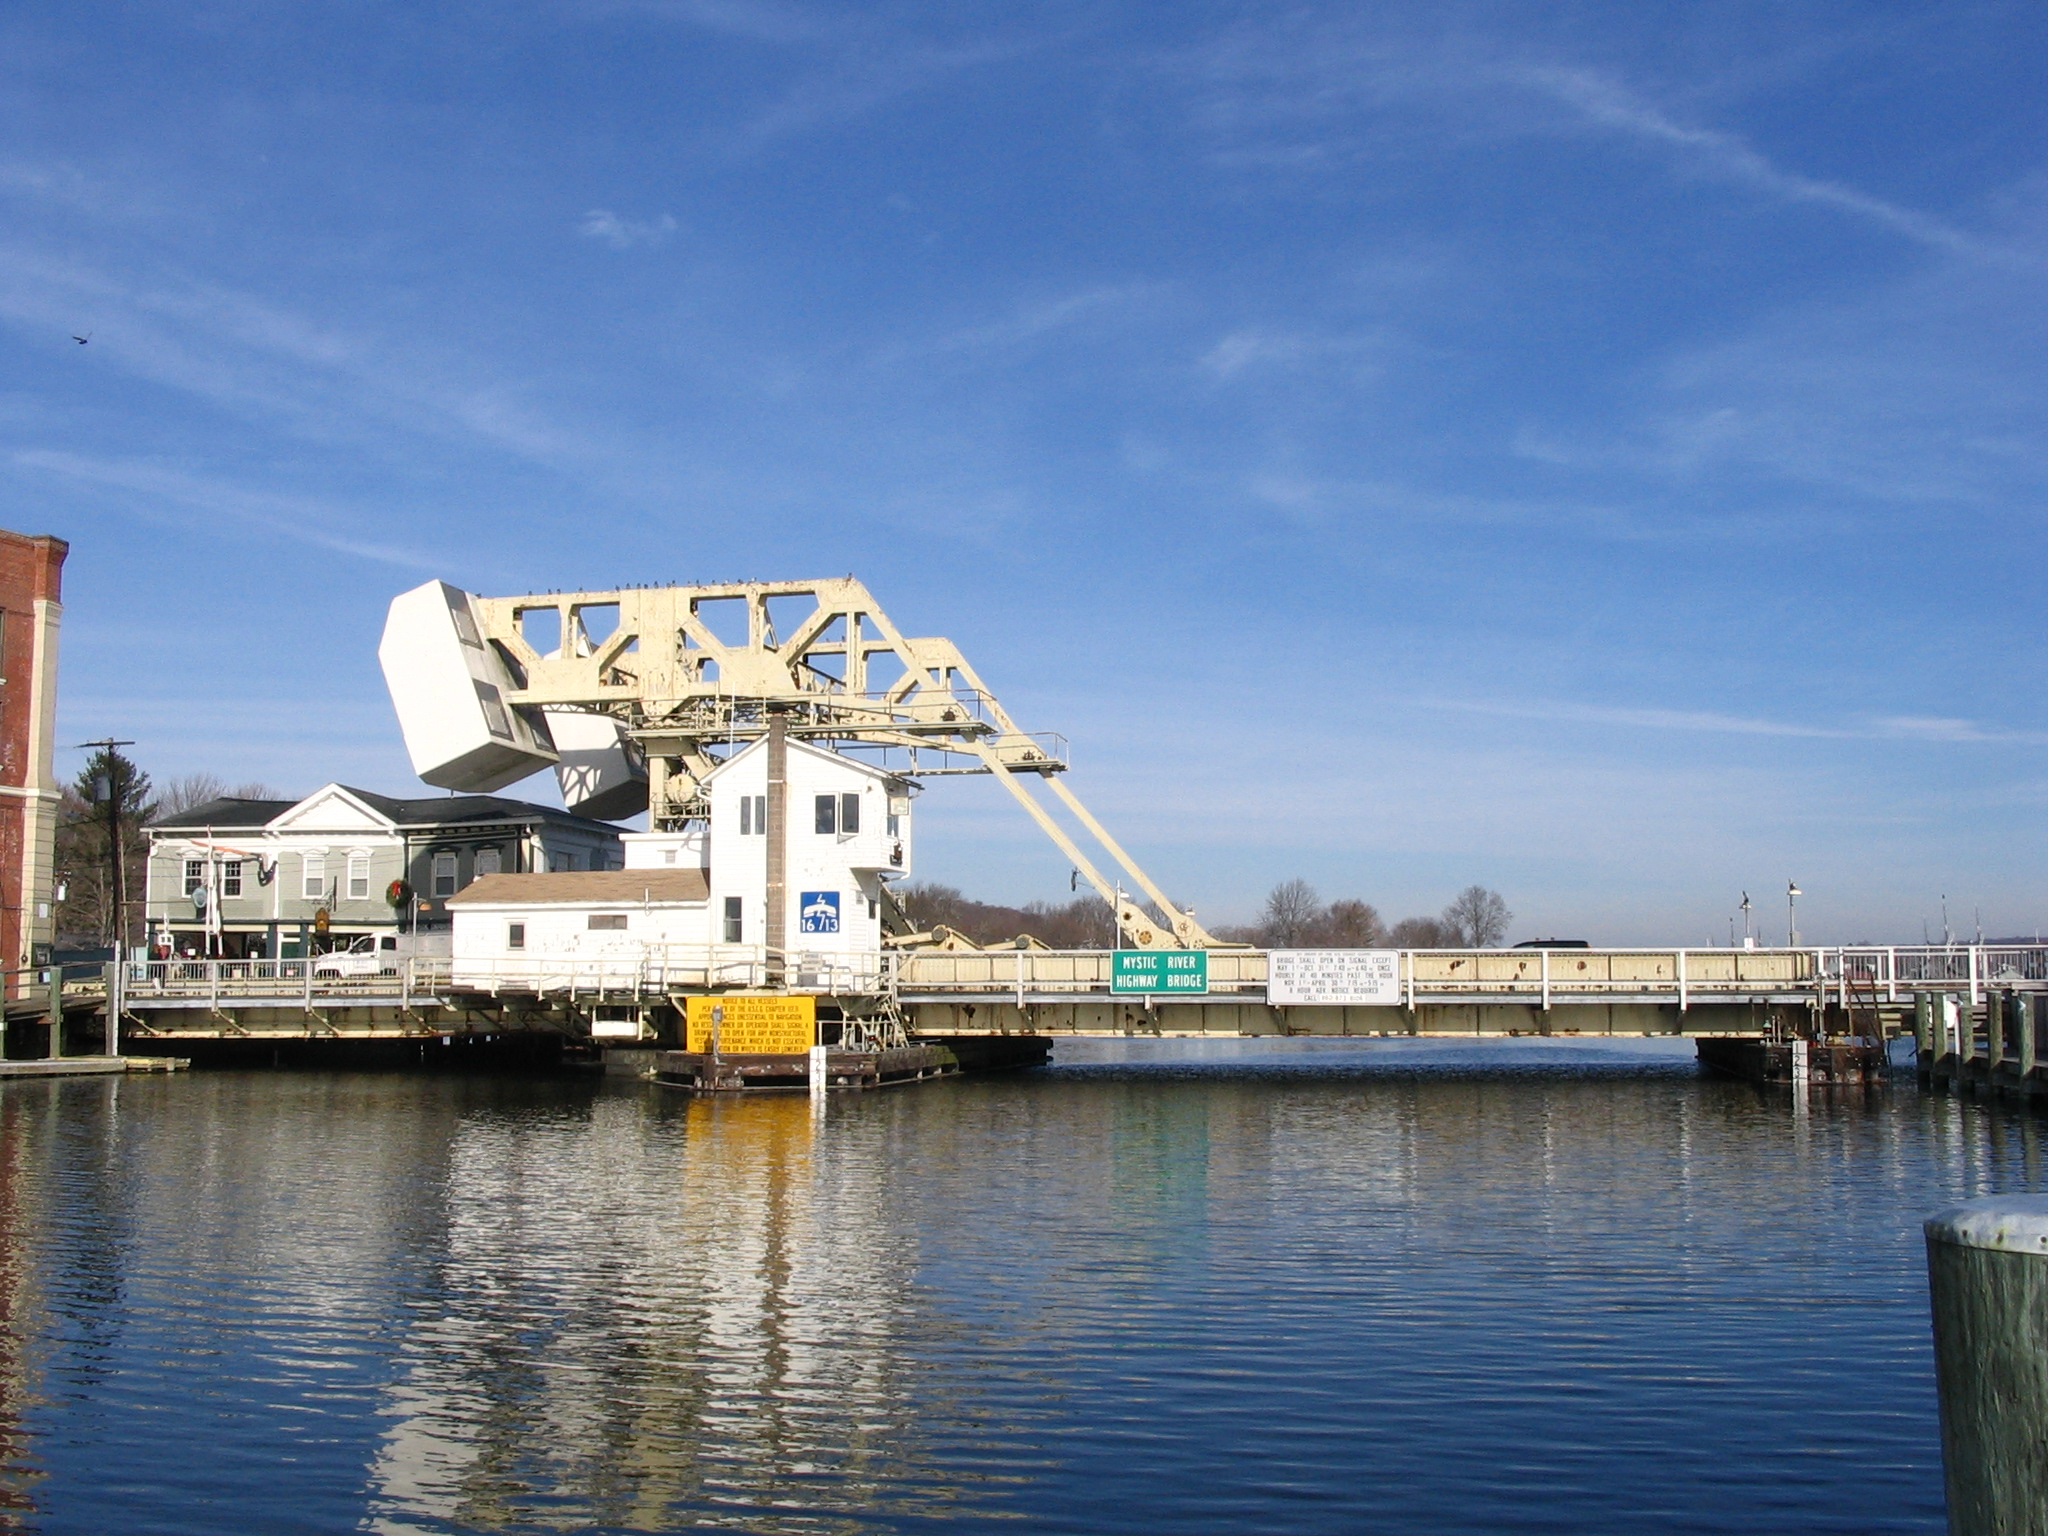 bascule bridge Bascule definition, a device operating like a balance or seesaw, especially an arrangement of a movable bridge (bascule bridge) by which the rising floor or section is counterbalanced by a weight see more.